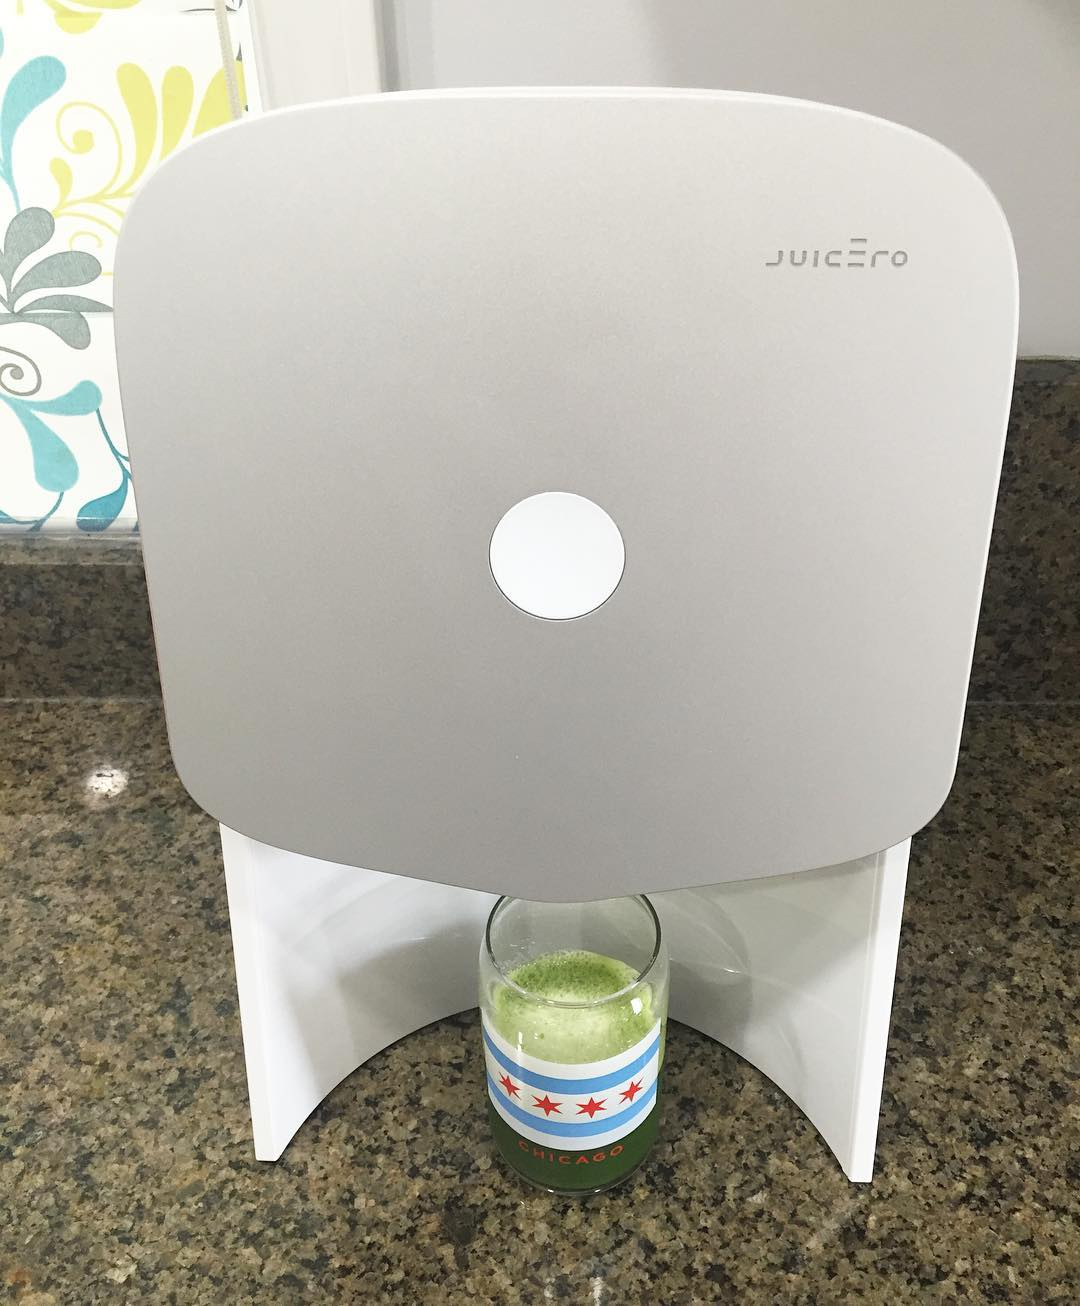 First fresh pressed greenjuice from my new juicero machine! Sohellip